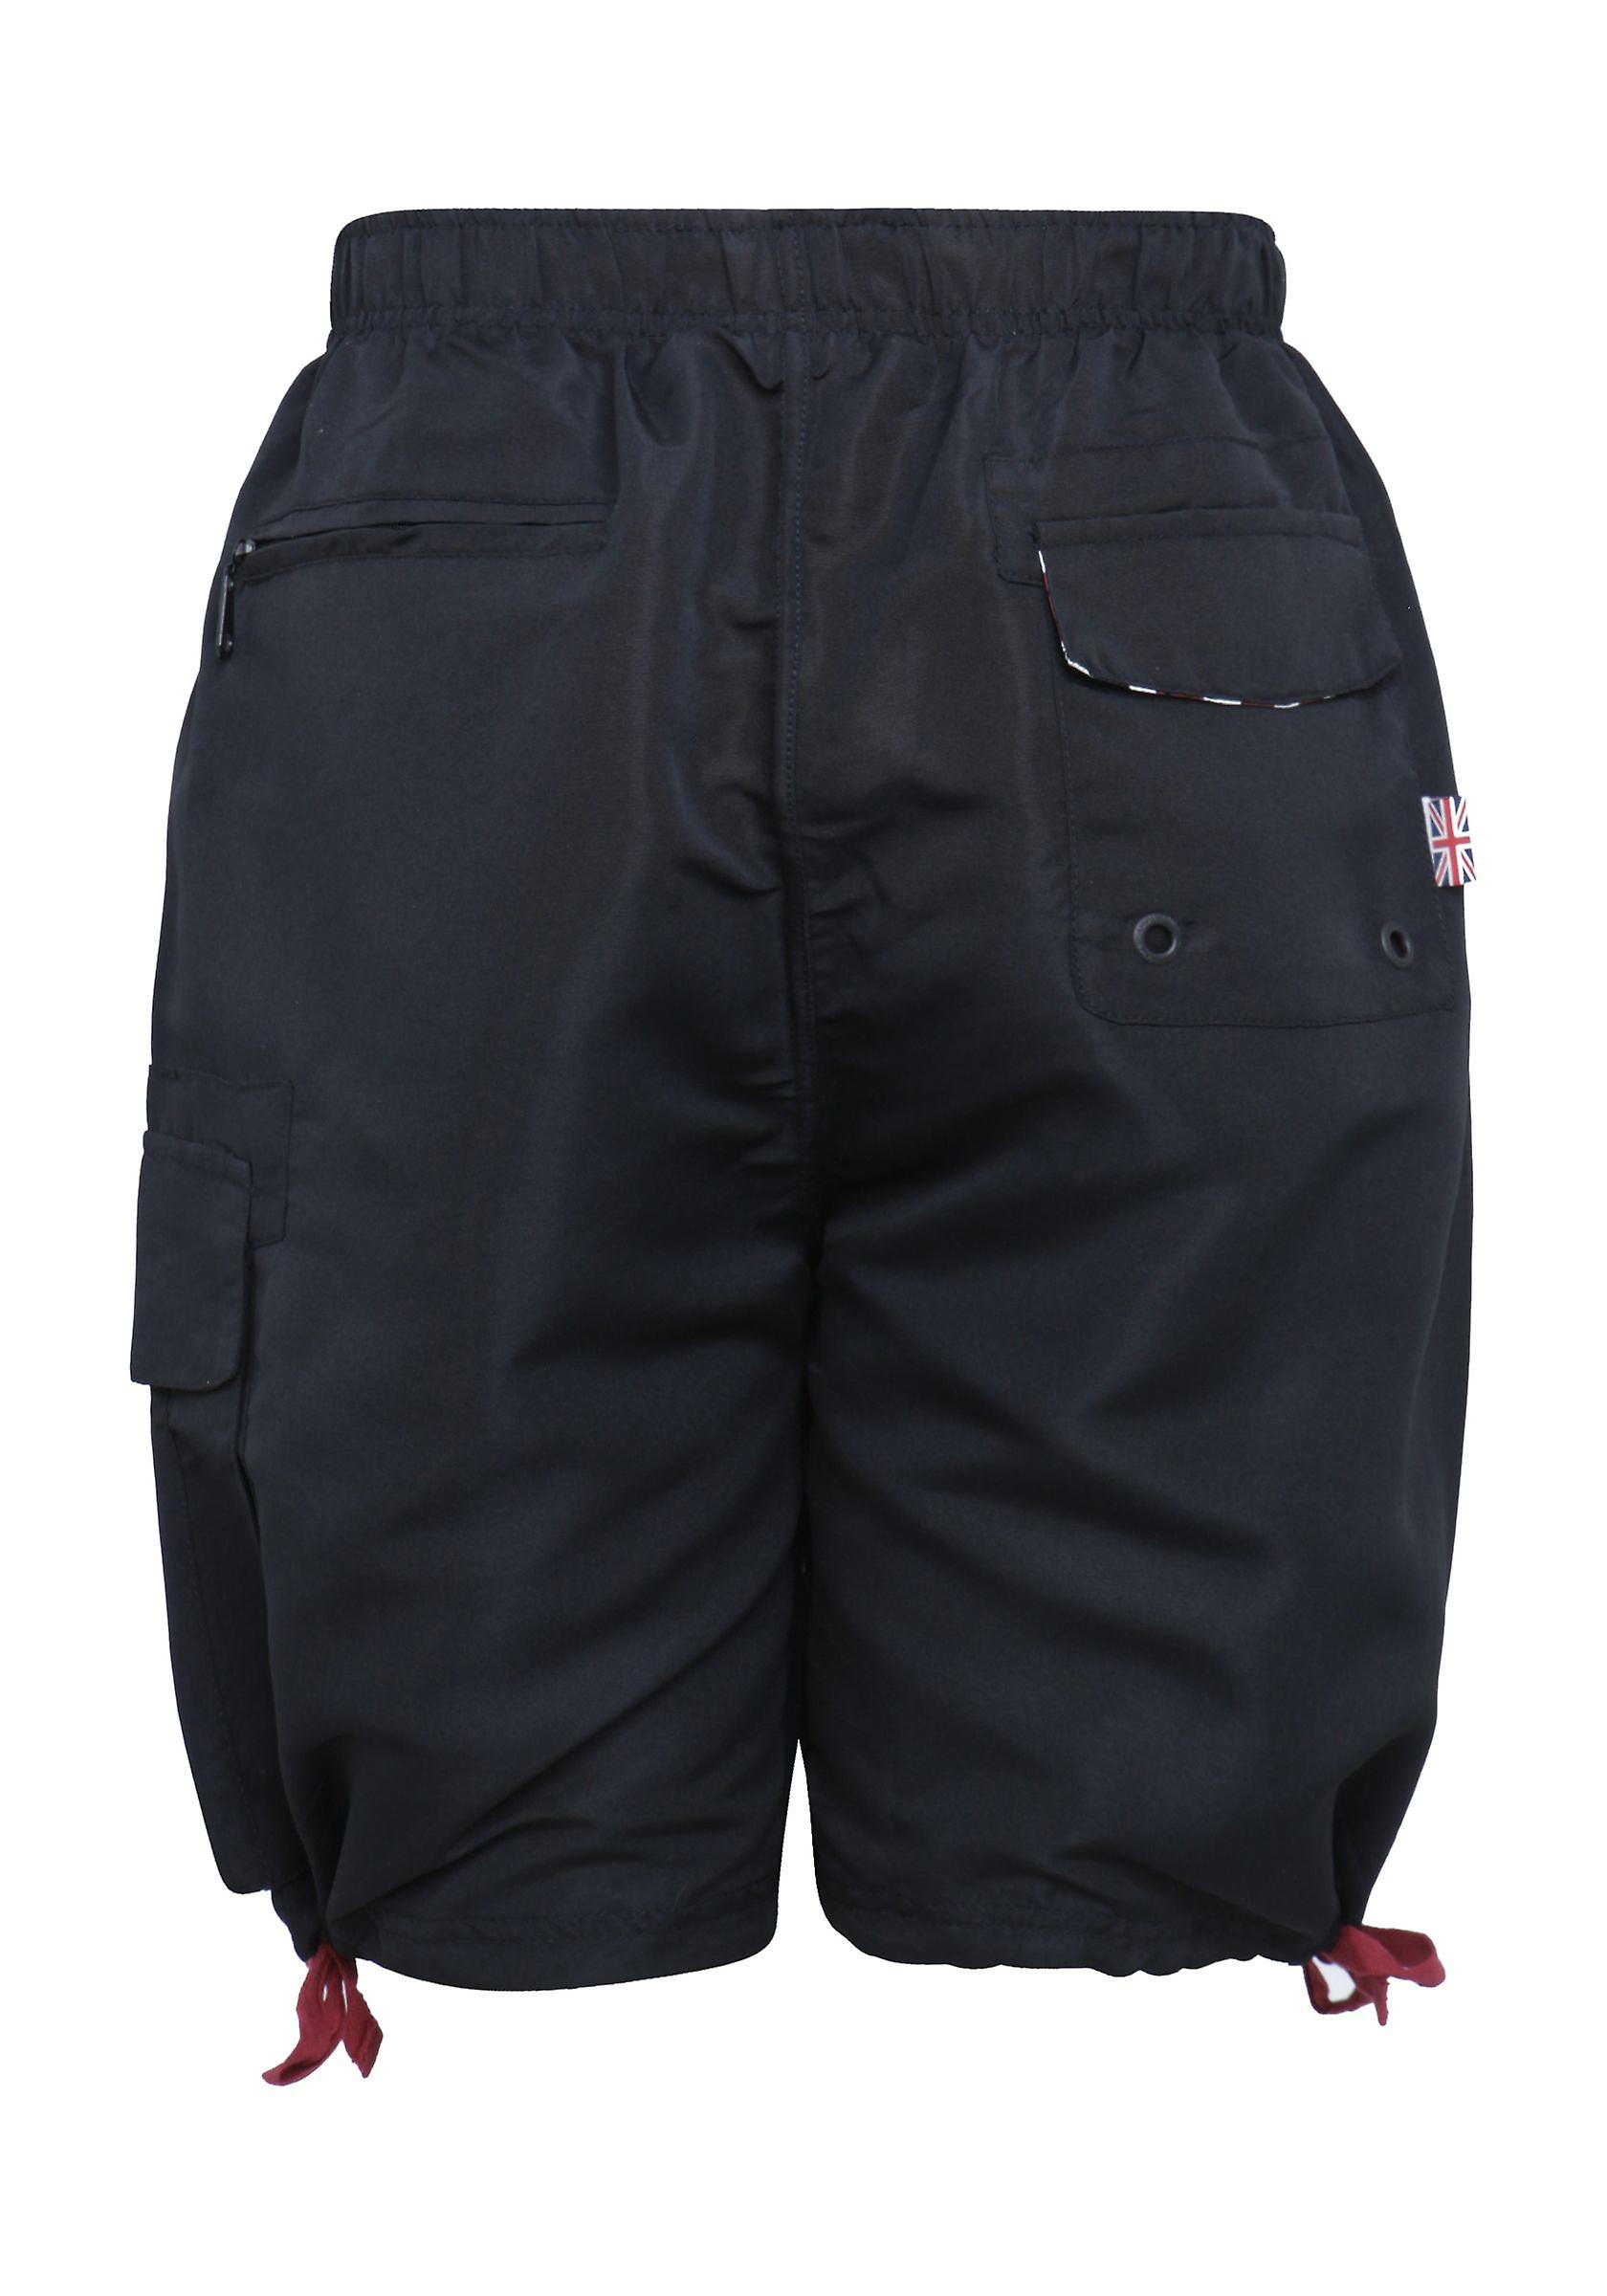 Lonsdale swimming trunks of new Abbey